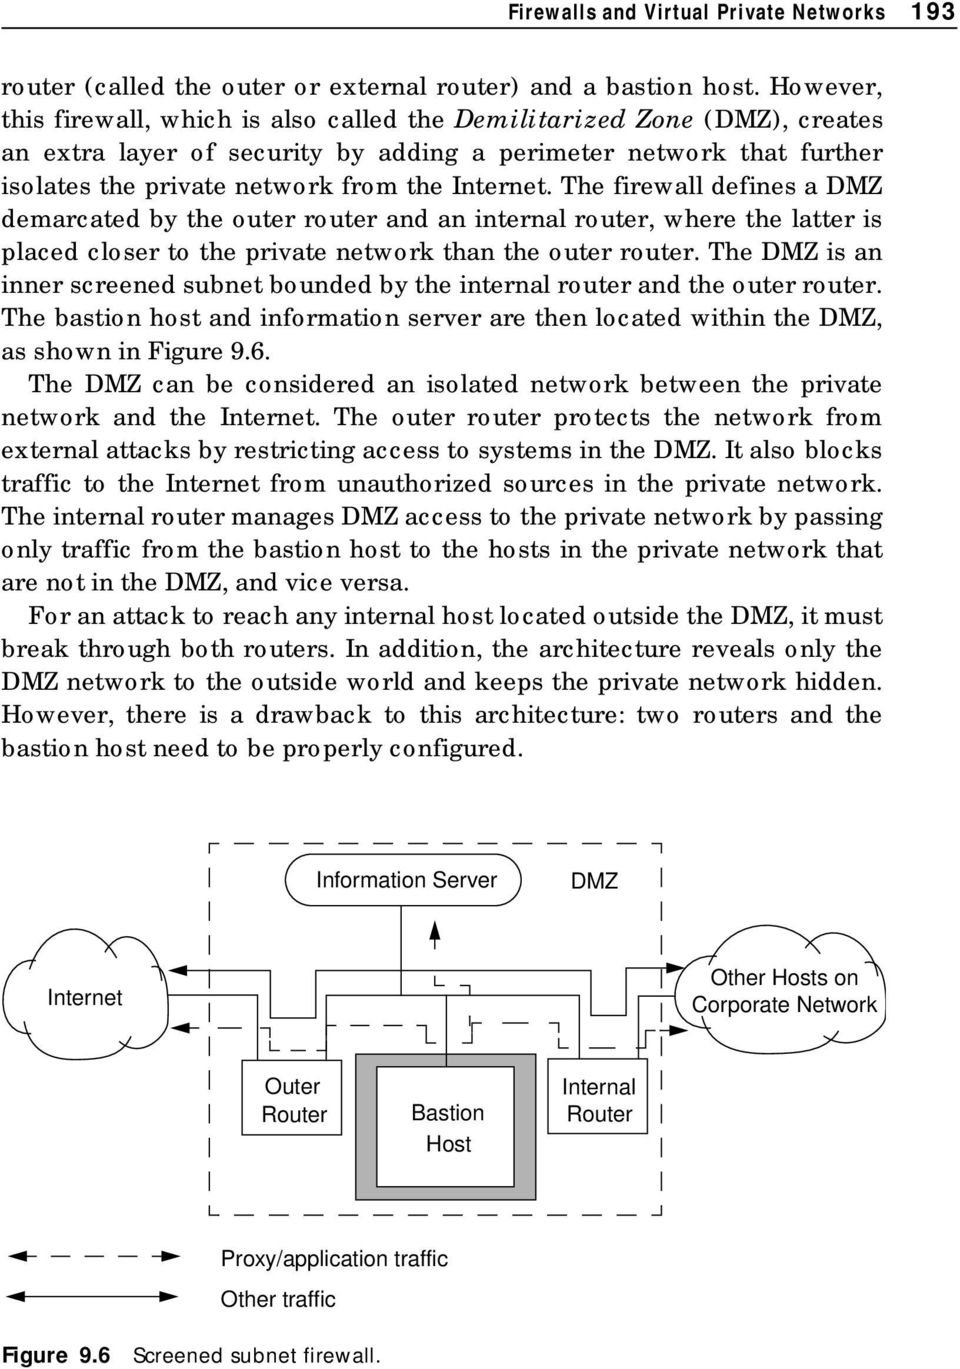 The firewall defines a DMZ demarcated by the outer router and an internal router, where the latter is placed closer to the private network than the outer router.